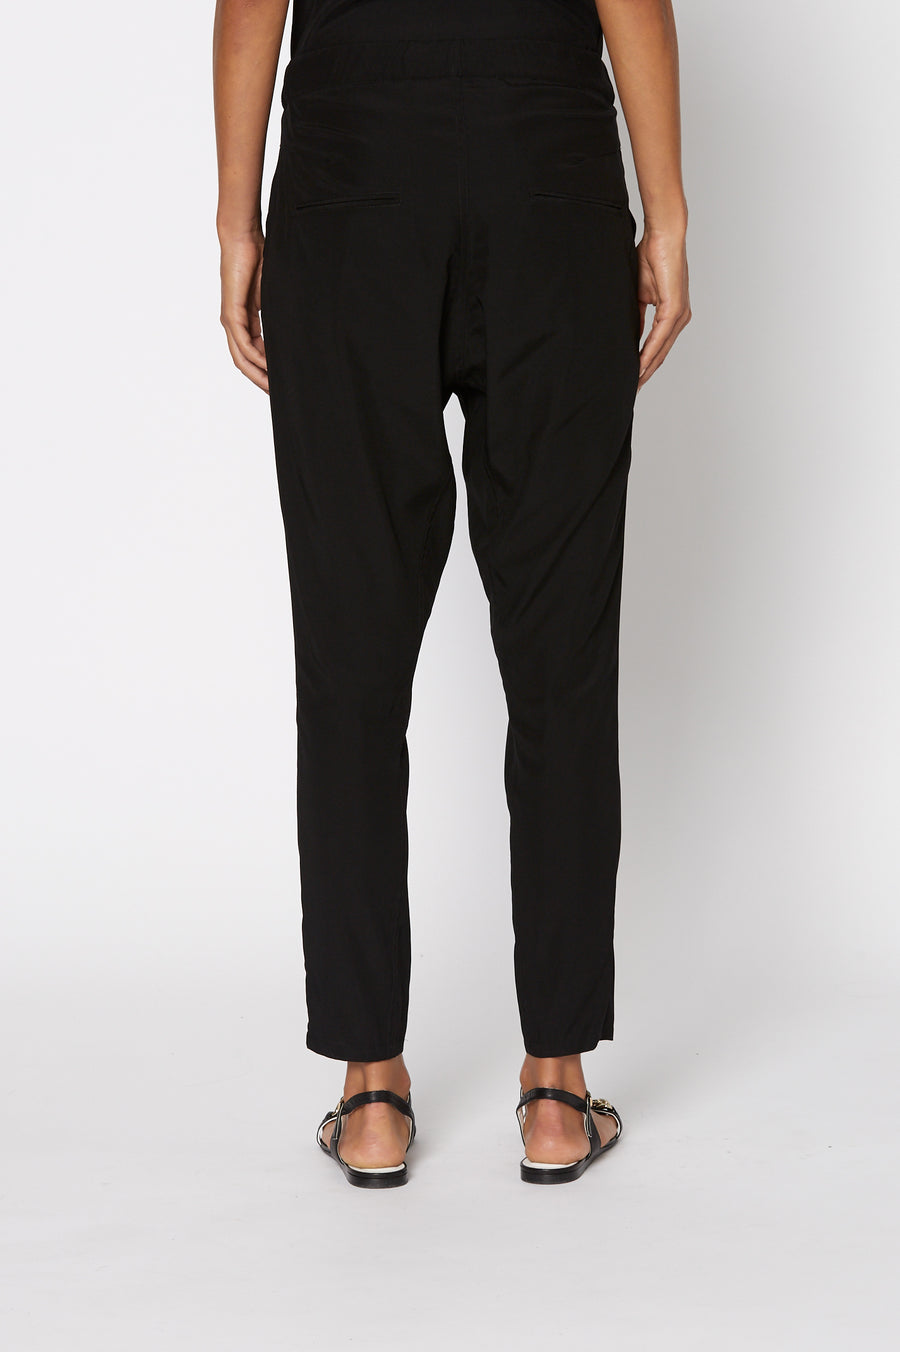 Silk Low Rise Boyfriend Pant, relaxed fit, incased elastic waist, dropped crotch, slanted pockets, Color Black